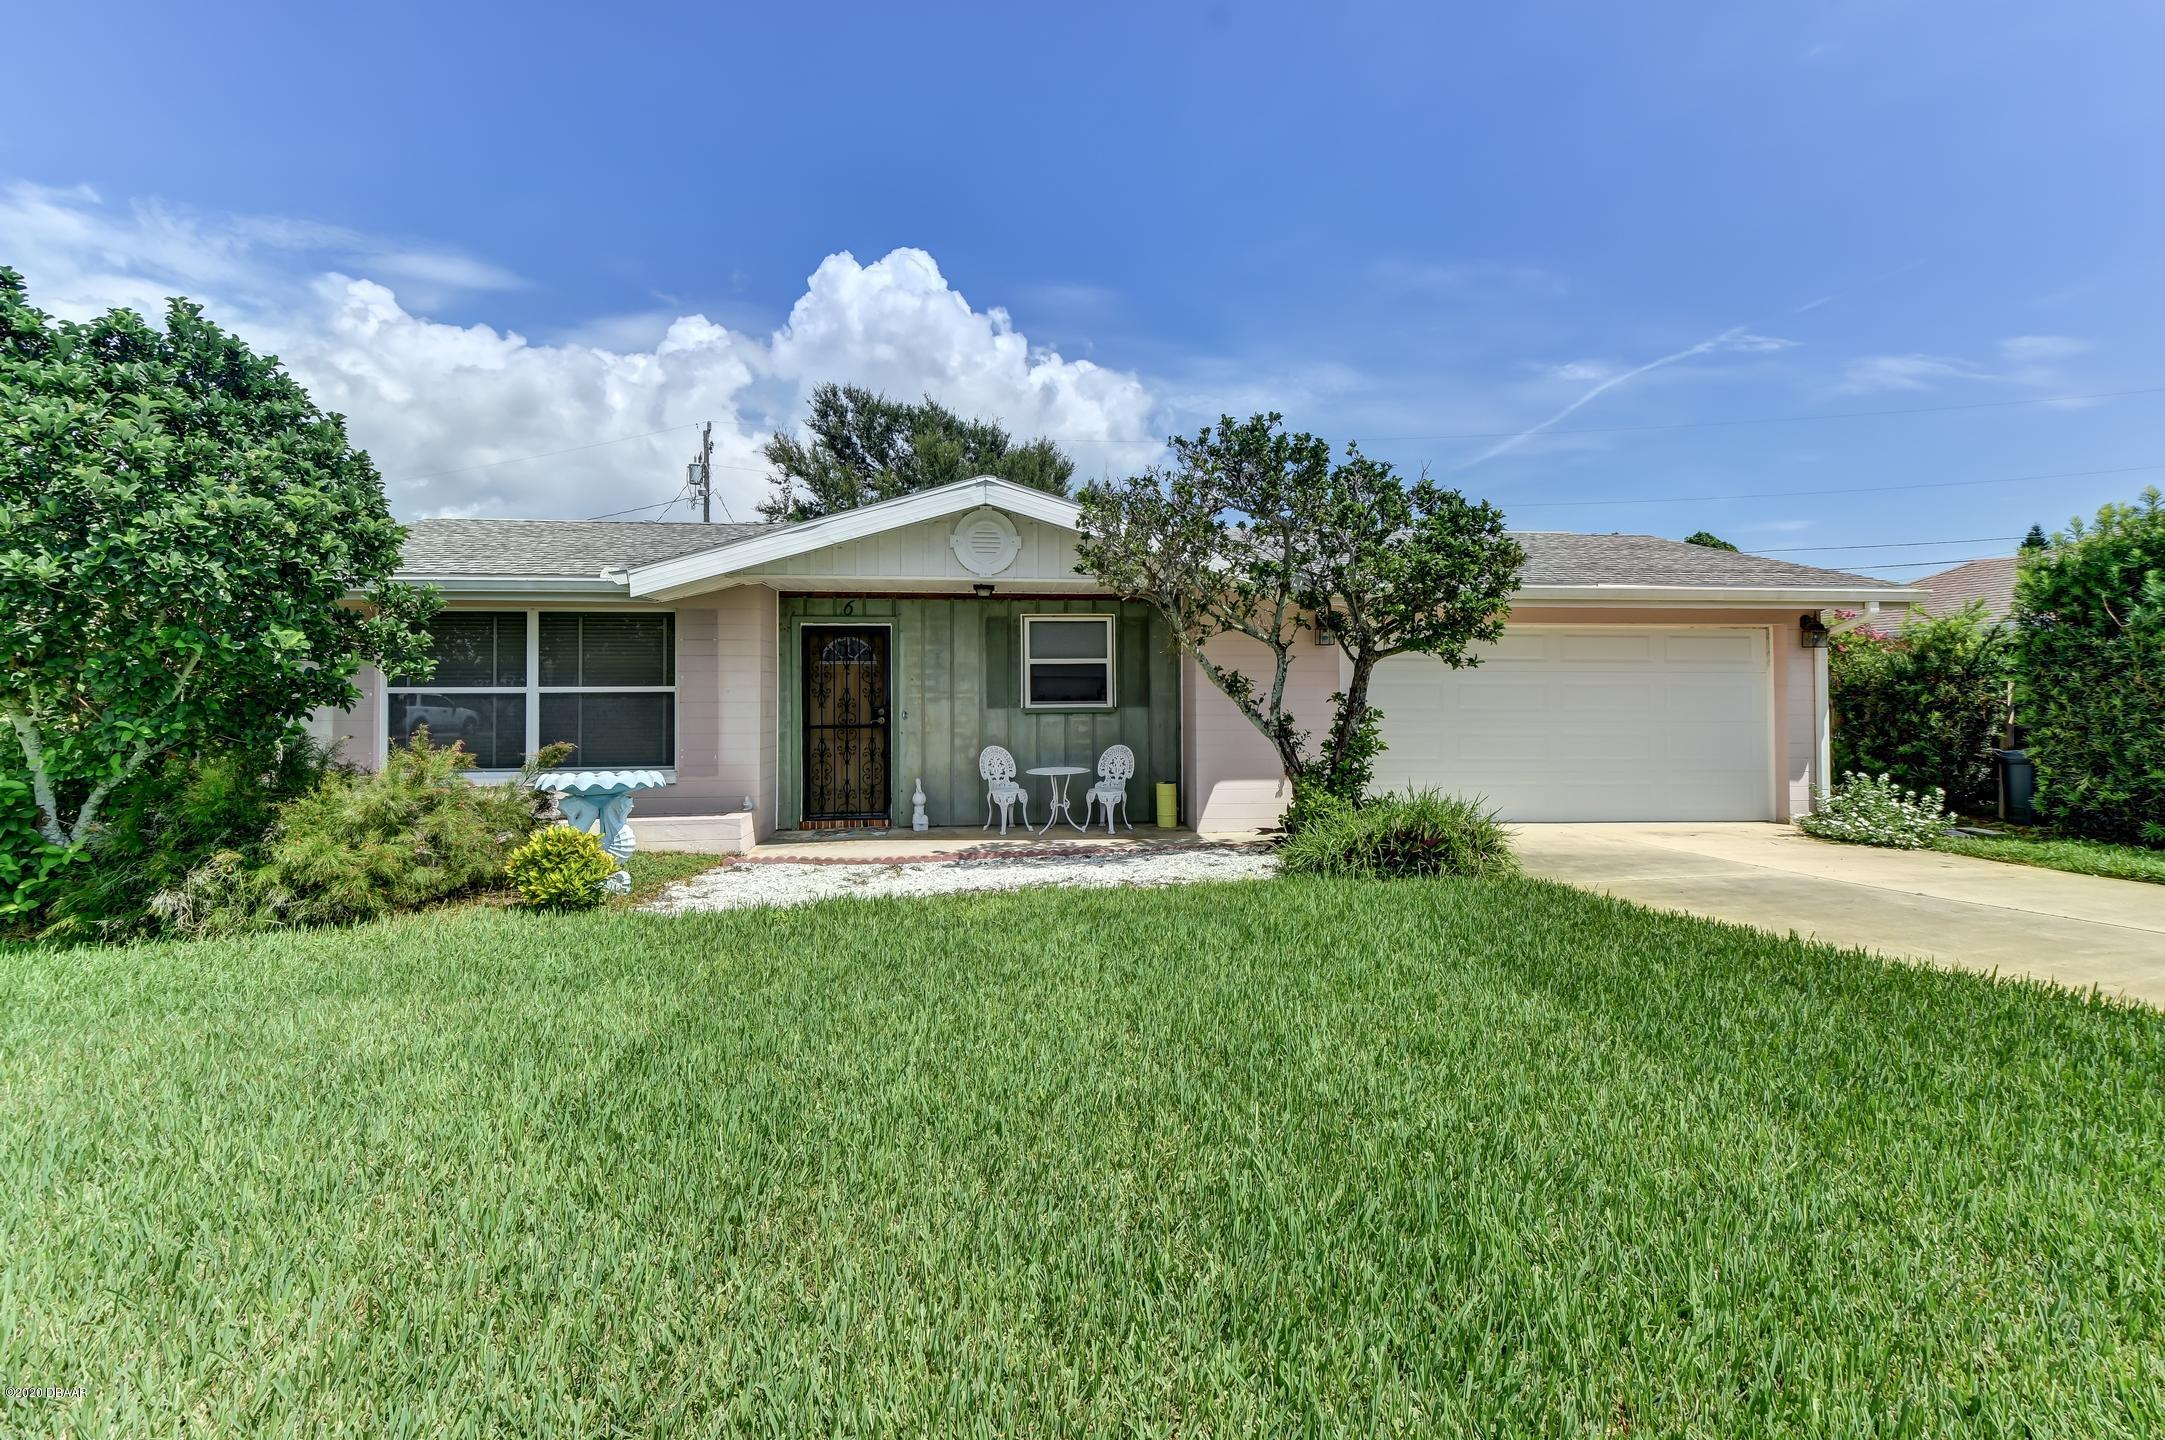 Details for 6 Granville Circle, Daytona Beach, FL 32118